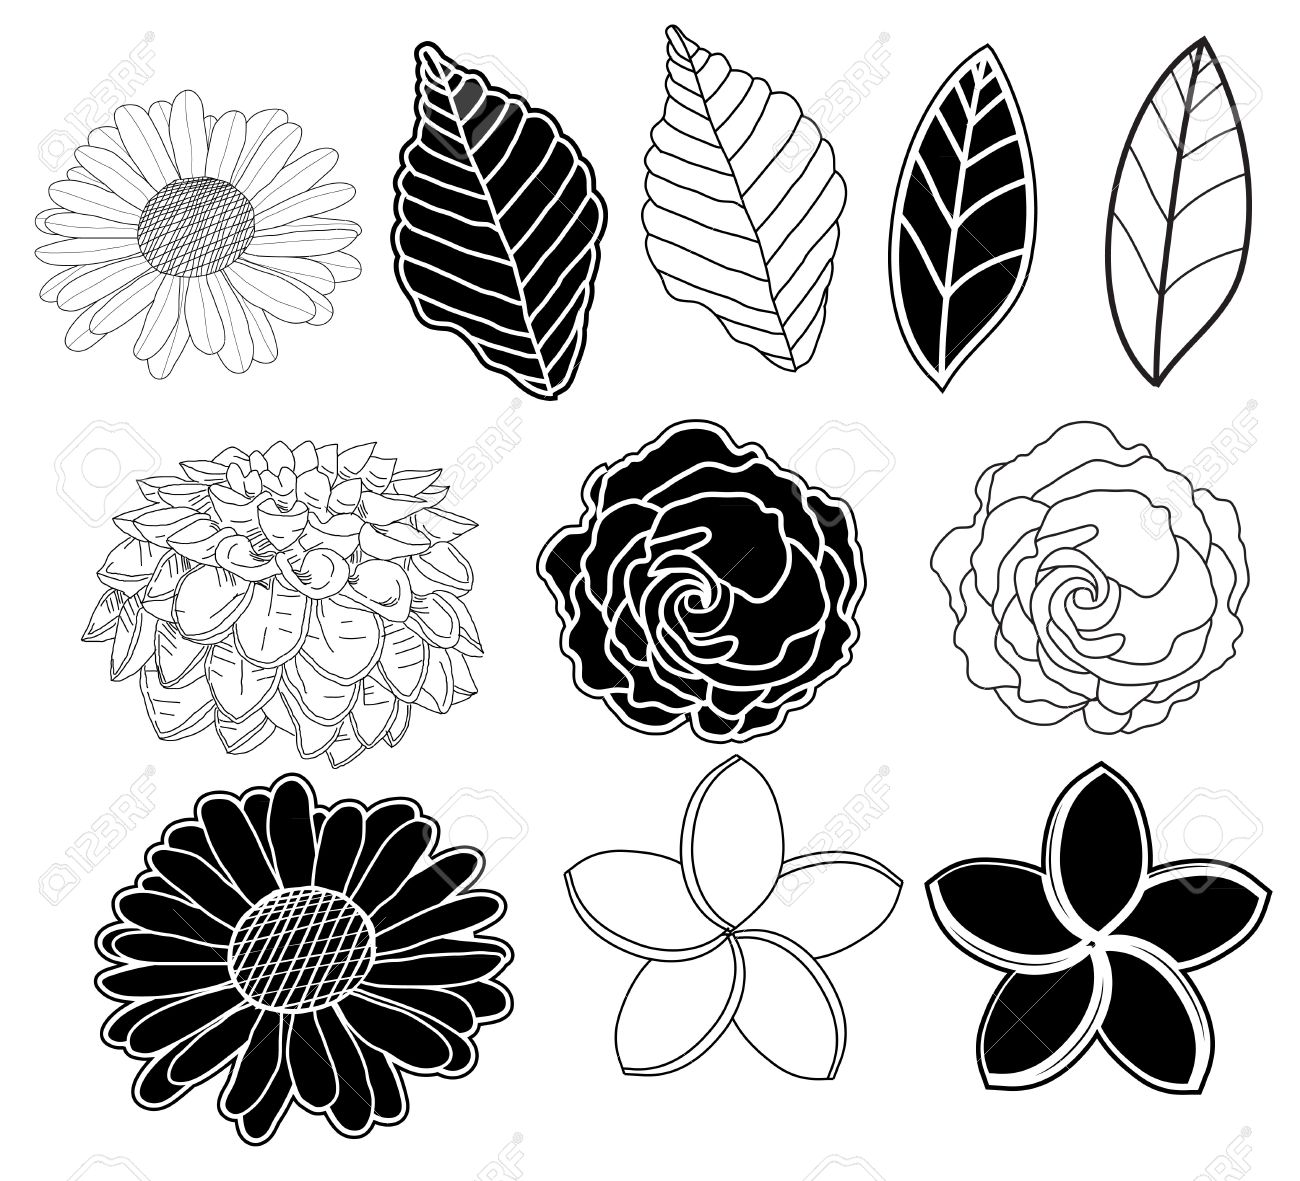 Floral Design With Leaf And Flower In Black And White Royalty Free